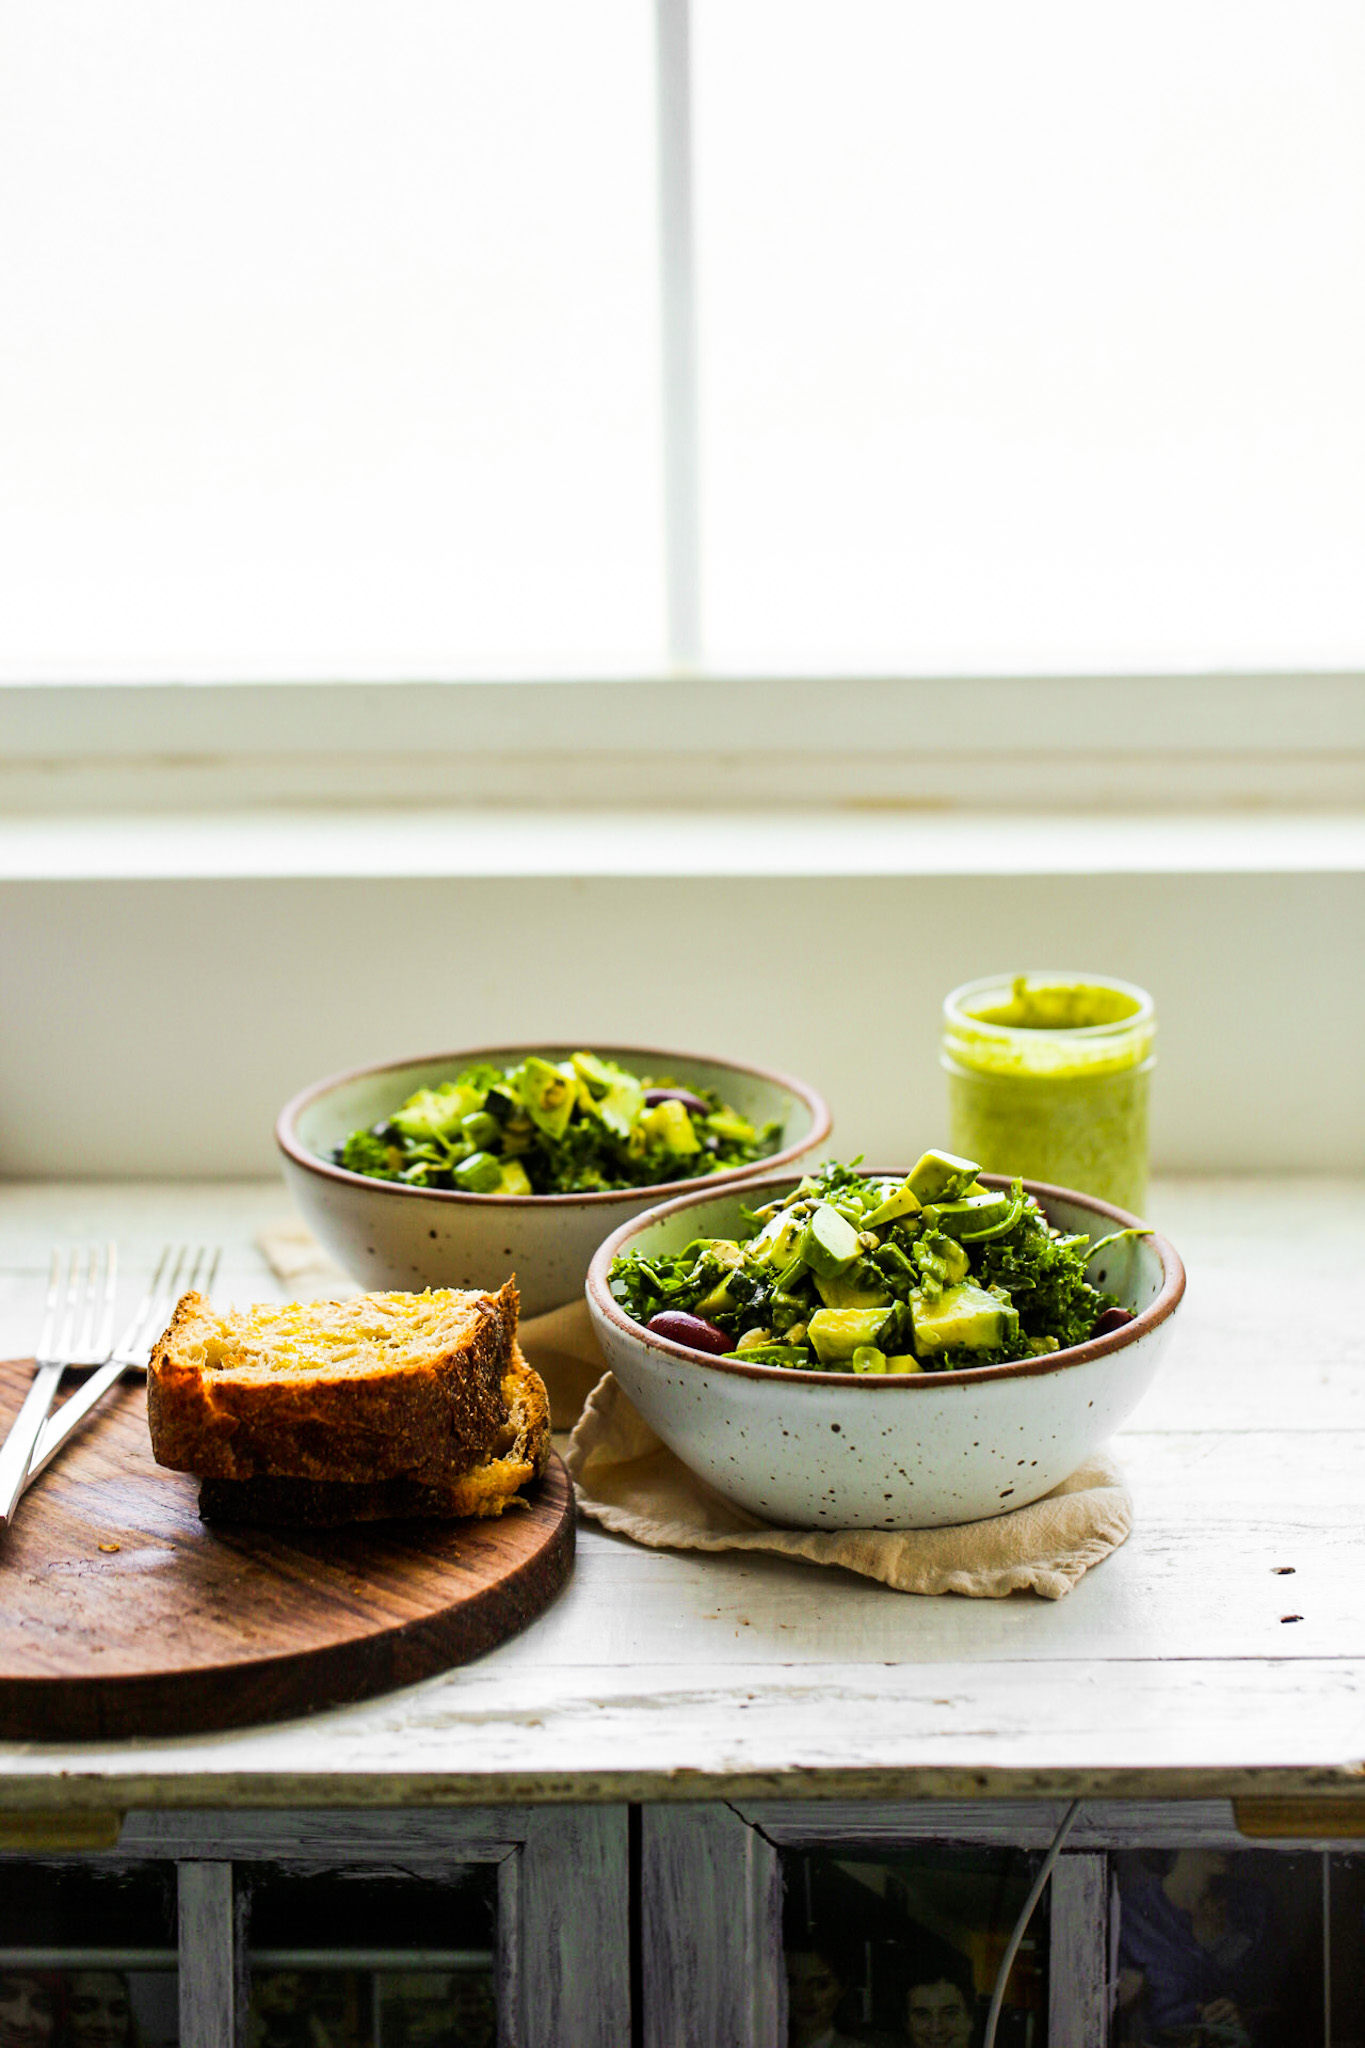 green goddess salad bowls with bread